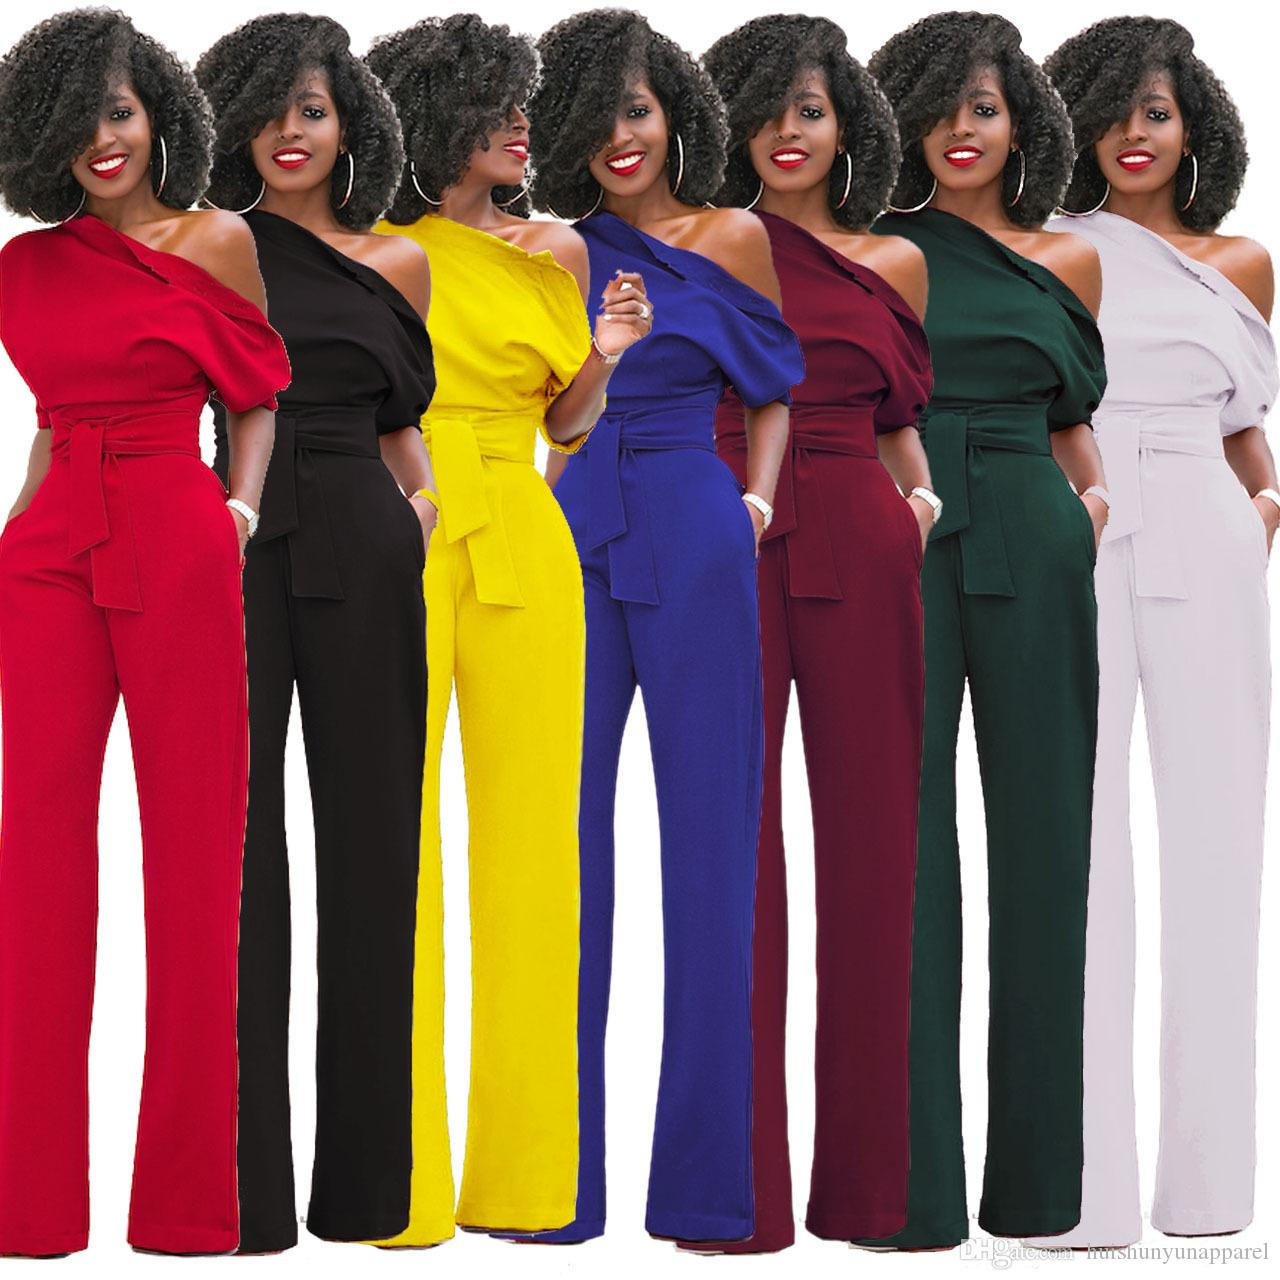 75d5a752e 2019 Women'S Rompers Jumpsuits Sexy Summer Overalls Half Sleeve Off Should  Solid Bodycon Elegant Bodysuit Wide Legging Pants From Huishunyunapparel, .